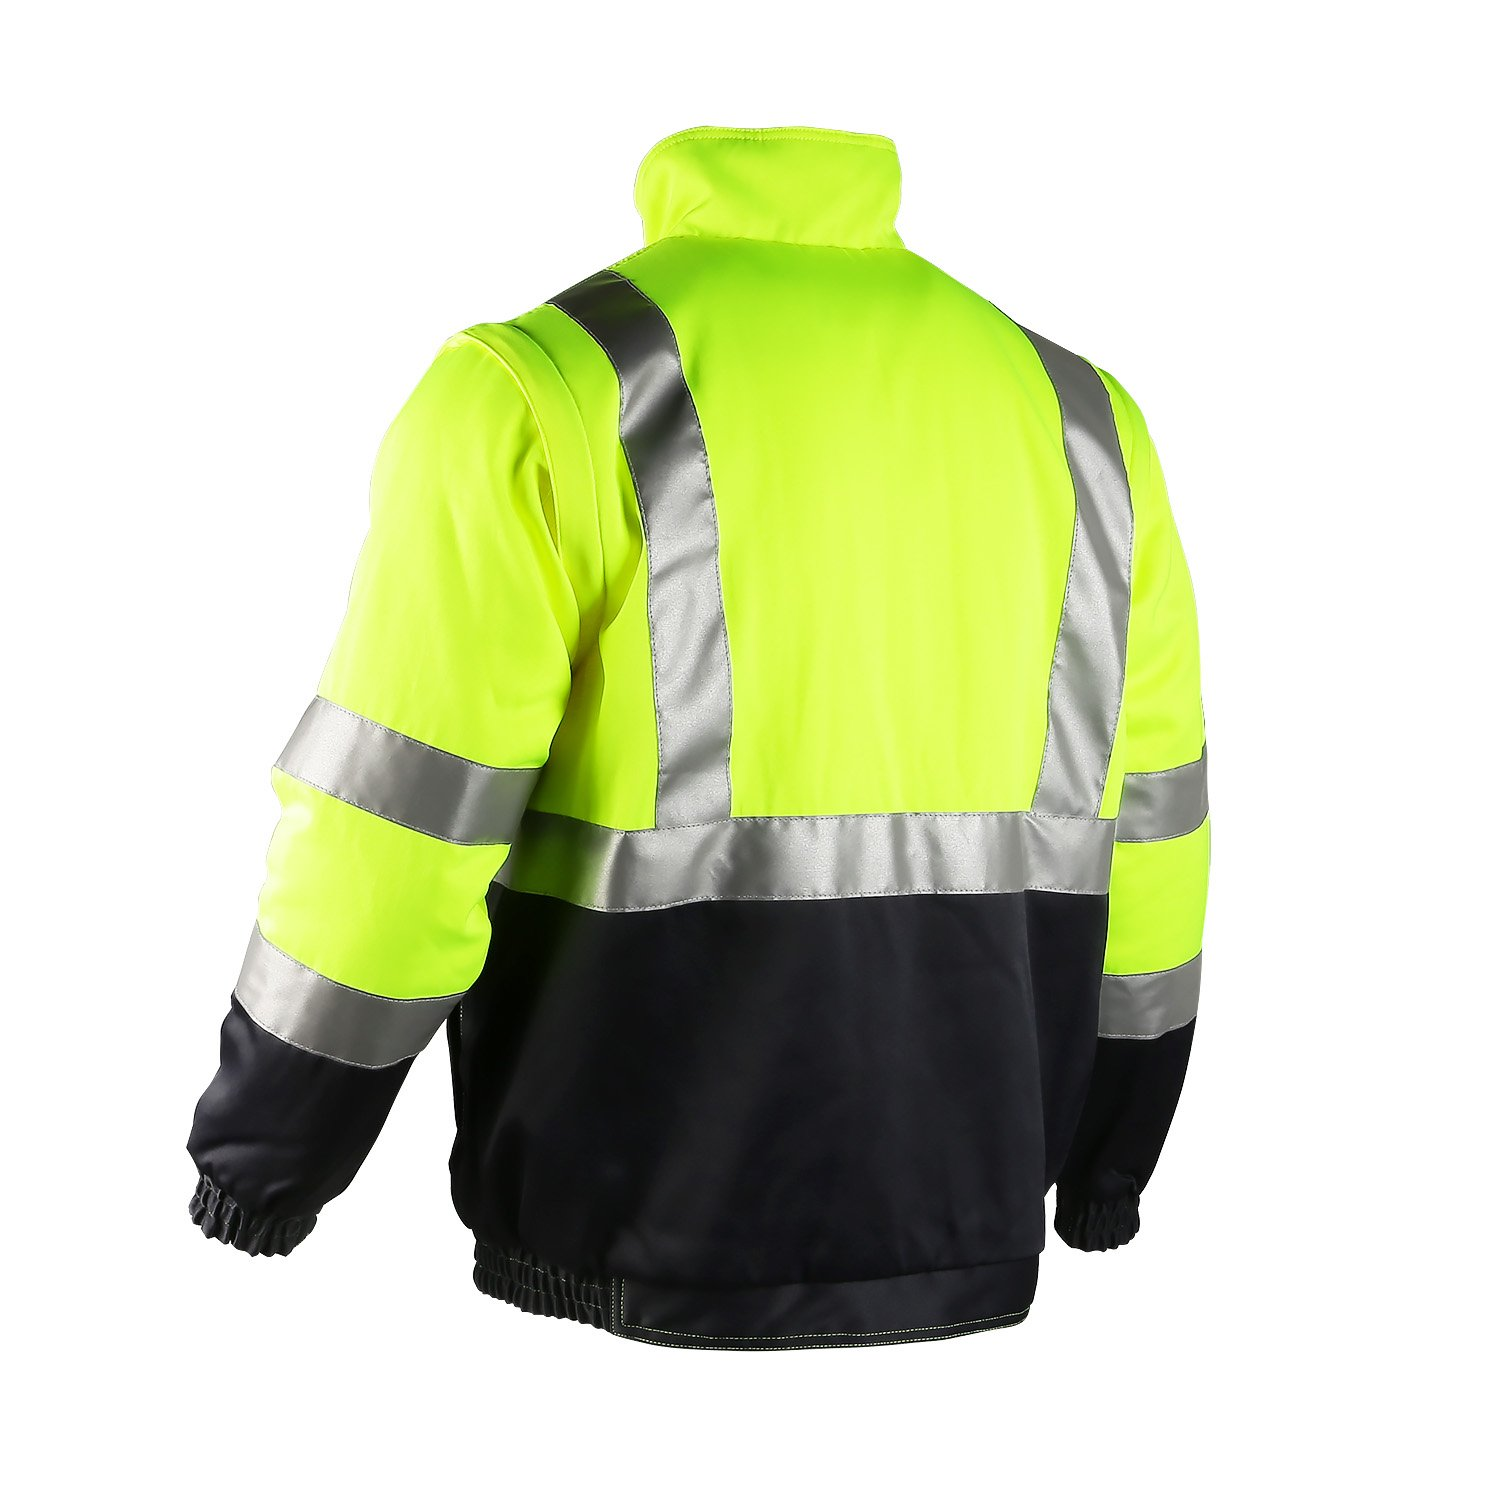 ororo Men's Heated Jacket ANSI/Isea Class 2 High Visibility Safety Bomber Jacket With Battery Pack(XL) by ororo (Image #3)